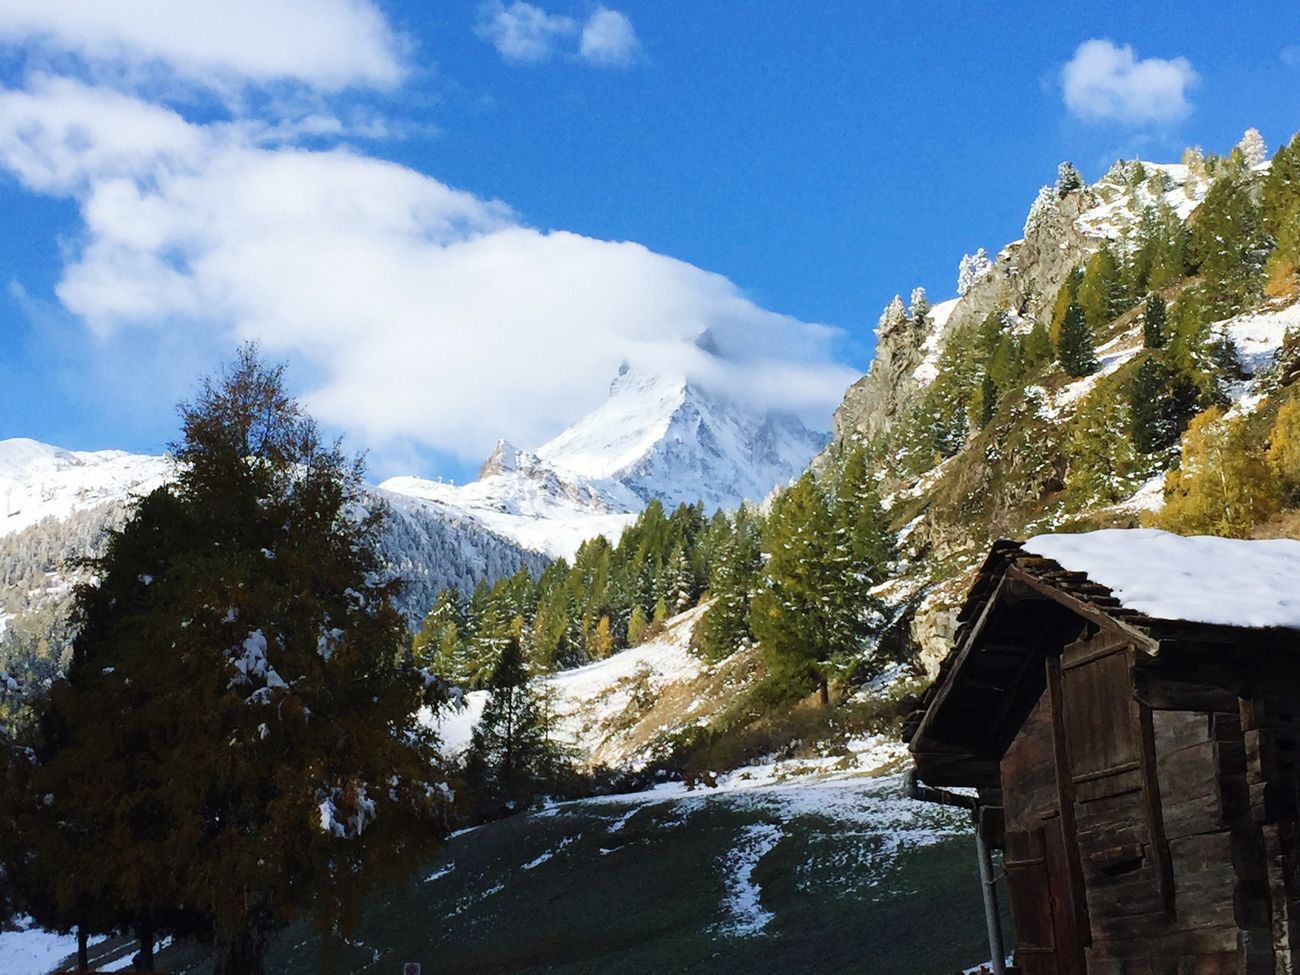 Mountains Switzerland Zermatt Mountain Snow Famous Place Zermatt 2015 Alps Swiss Alps Swissalps Switzerlandpictures Matterhorn  The Matterhorn Autumn Foggy Cloud White White Top Nature Europe Alpen Panorama Panoramic Photography